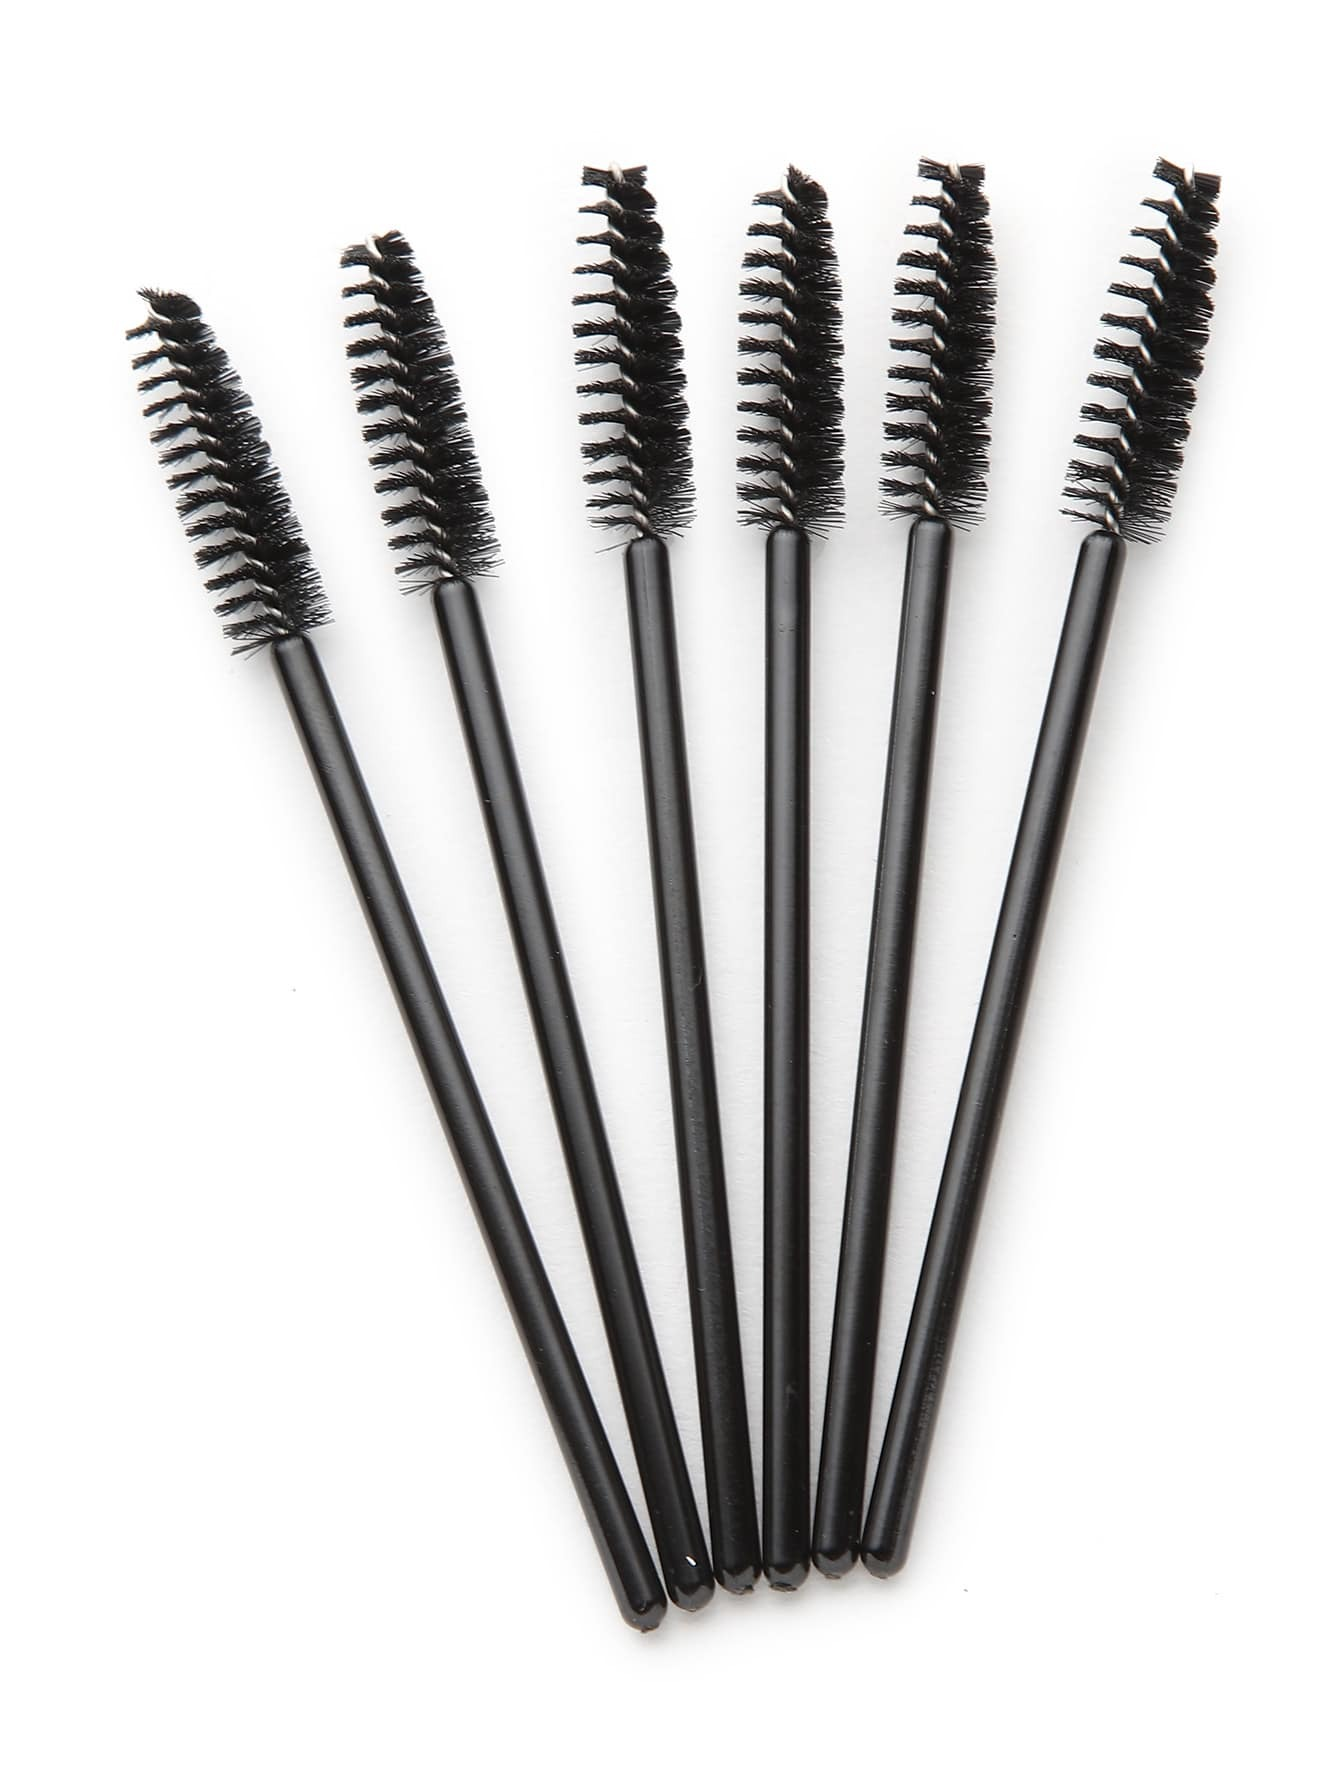 Lash Combs. Beauty. Makeup. Lash Combs. Store availability. Search your store by entering zip code or city, state. Go. Sort. Product - Stainless Steel Eyebrow Eyelash Comb Brush Eyelash Extension Cosmetic Makeup Metal Eyelash Comb and Eyebrow Brush For Eyeliner, Define Lash & Brow Cosmetics. Product Image.